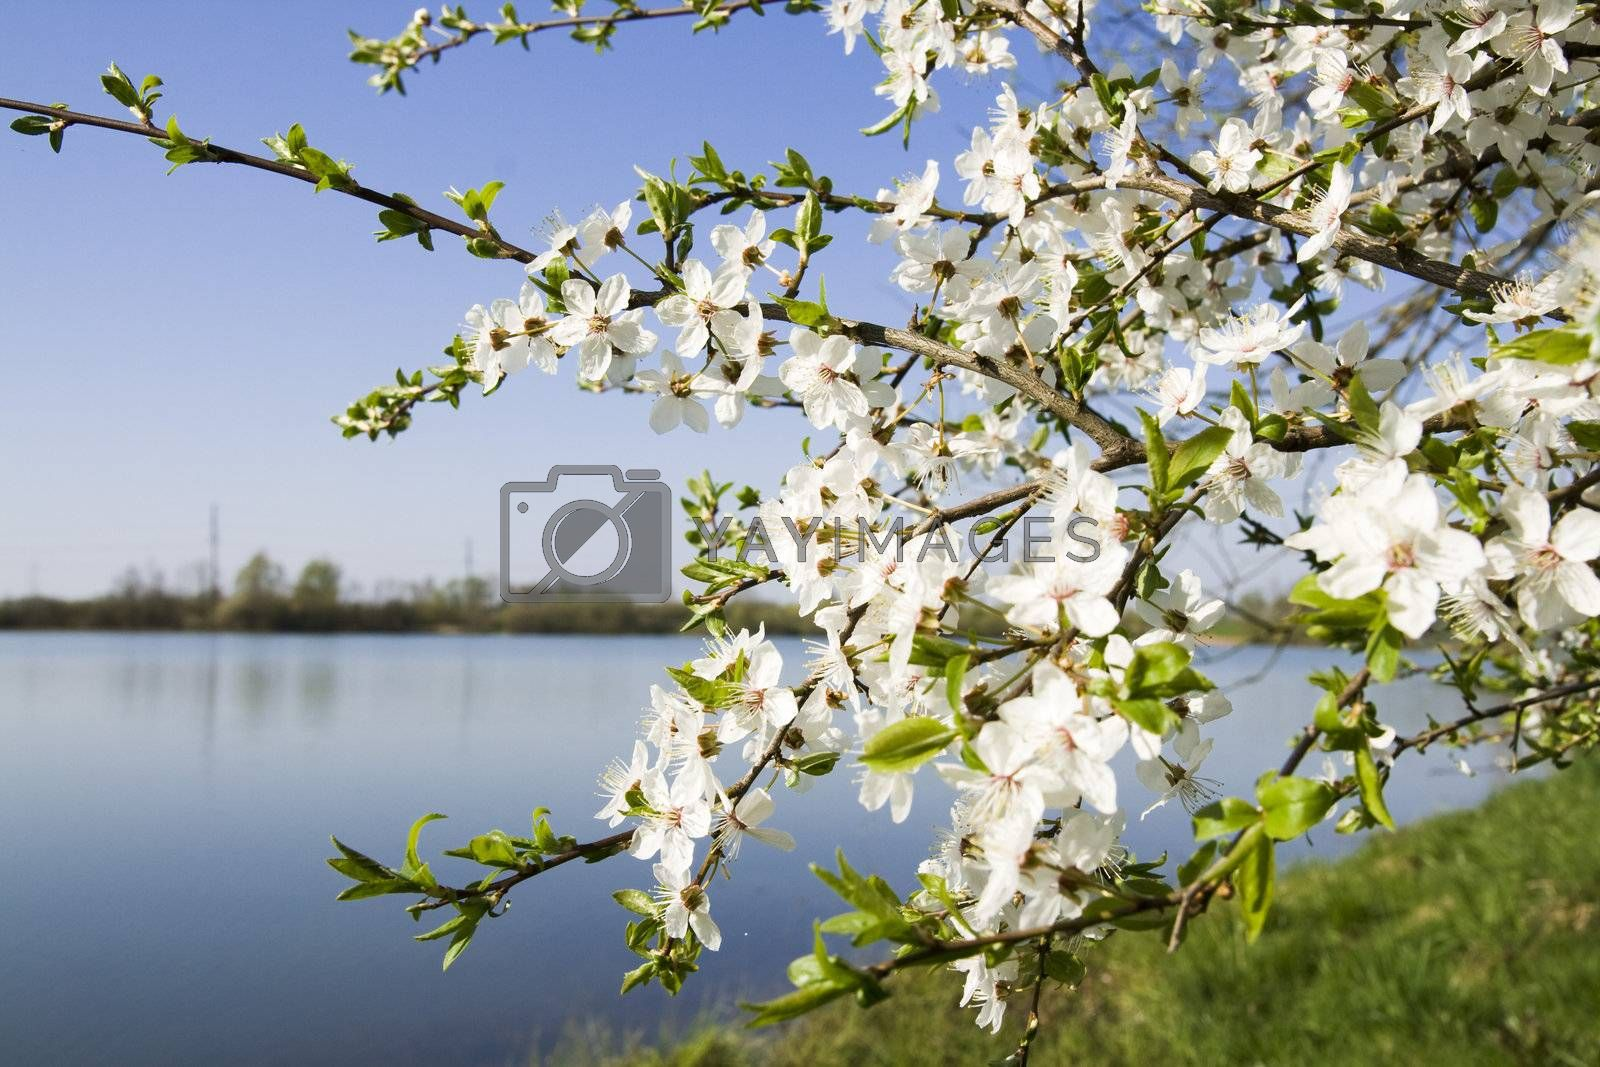 Close up shot of white cherry blossoms with the background out of focus.